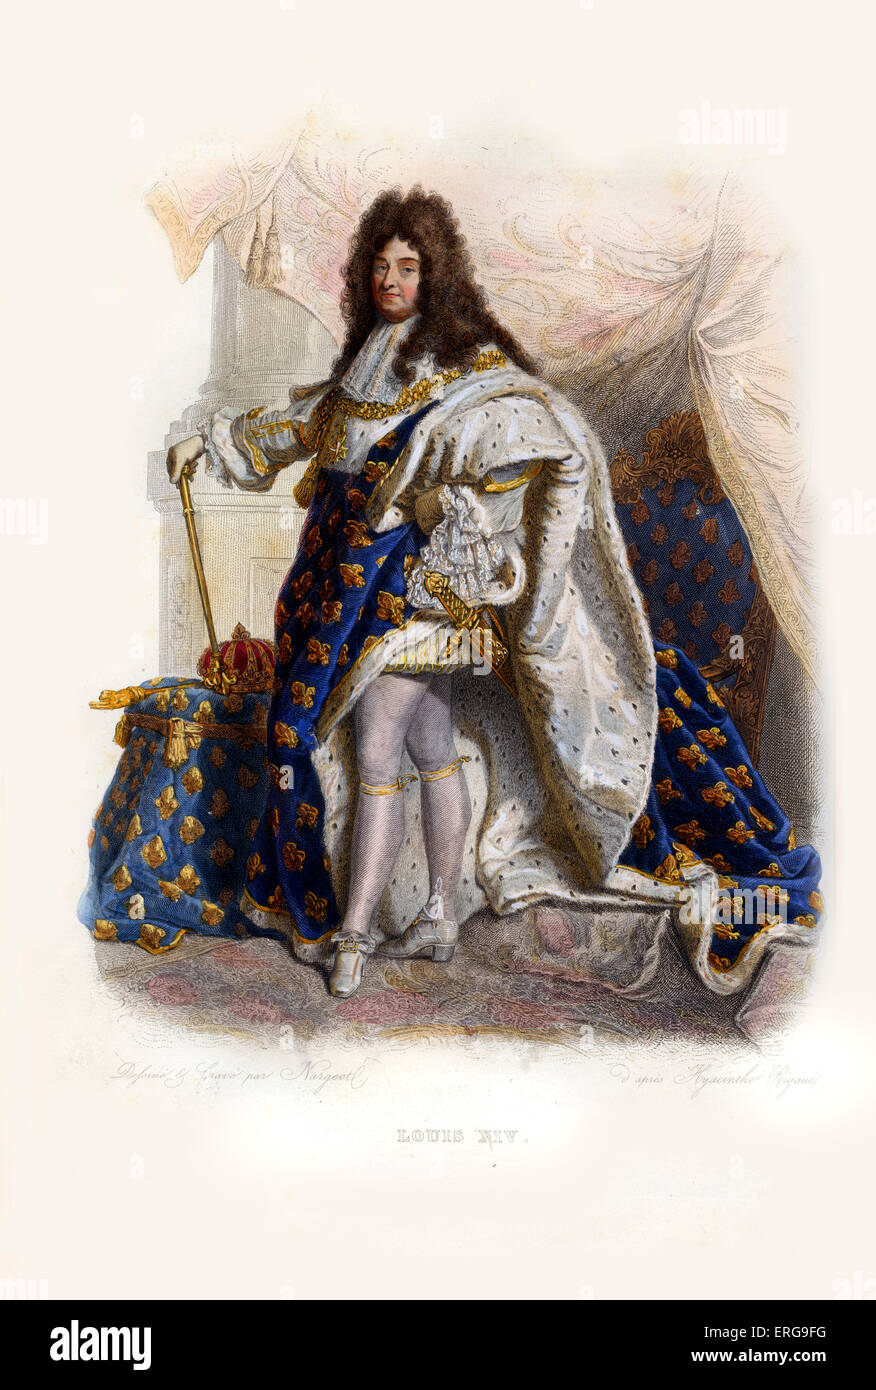 Louis XIV, known as the Sun King (French: le Roi Soleil). King of France and of Navarre (1643-1715). 1638-1715. - Stock Image